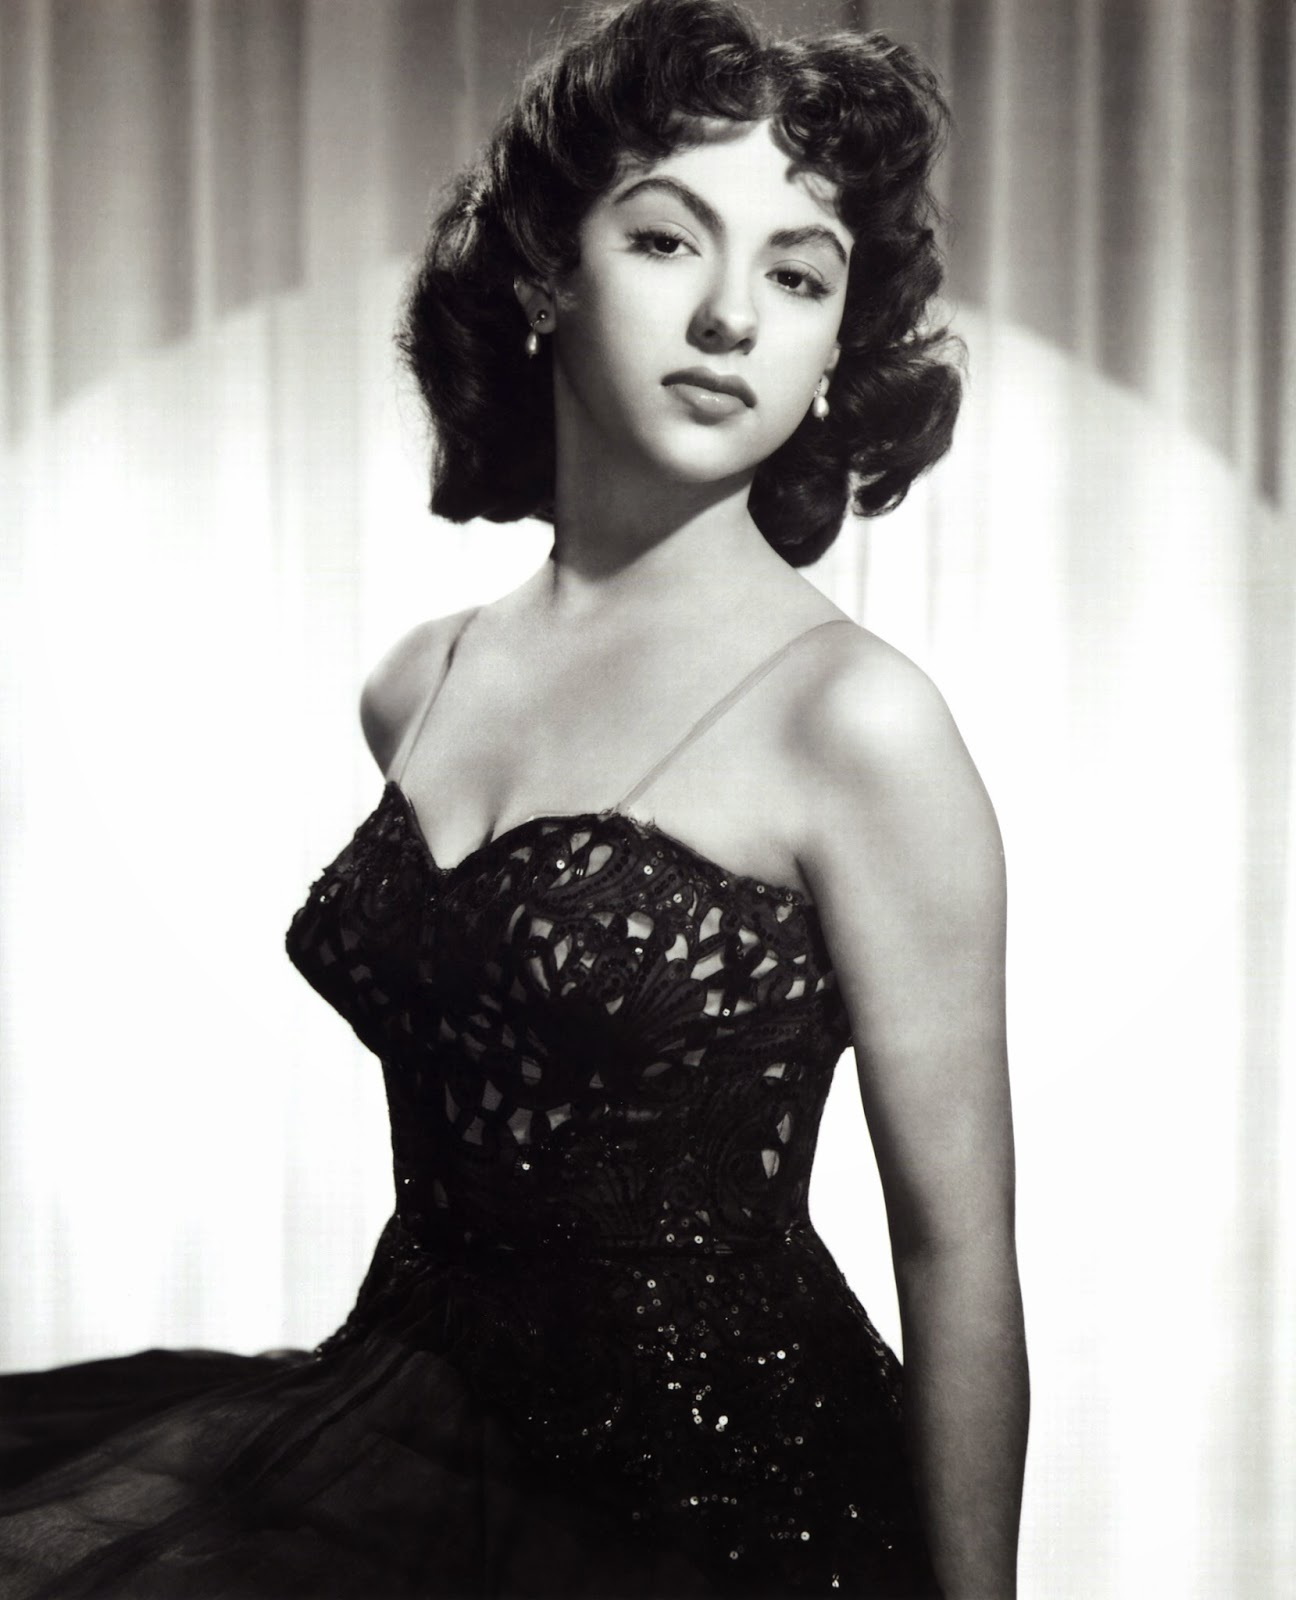 chatter busy rita moreno quotes. Black Bedroom Furniture Sets. Home Design Ideas